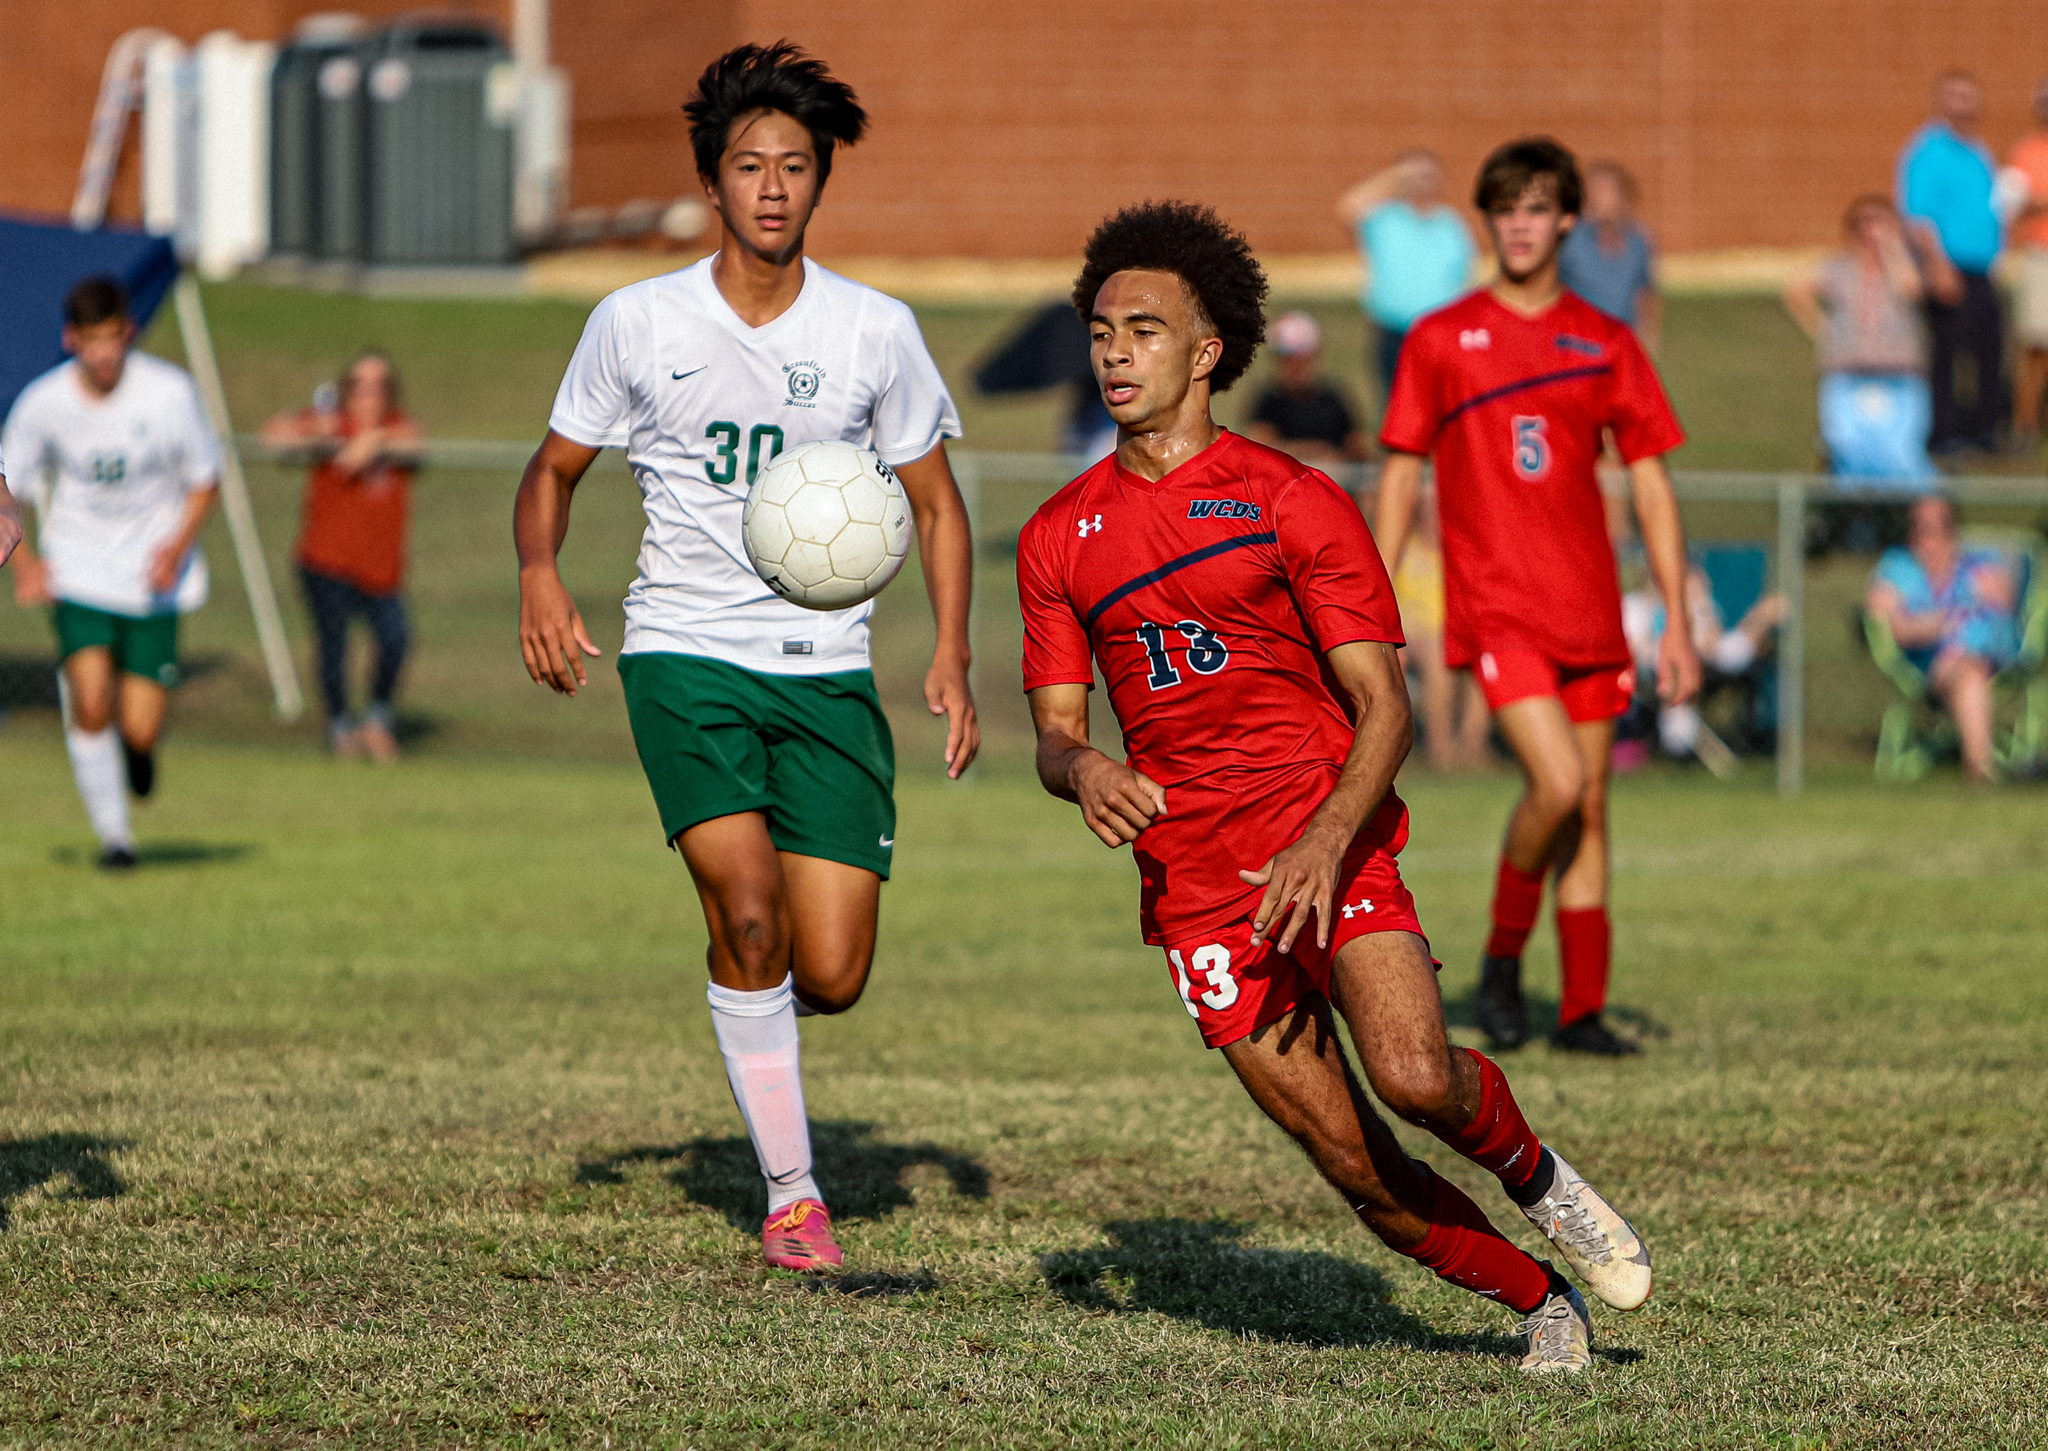 Boys Soccer: WCDS Blanks Greenfield (PHOTO GALLERY)